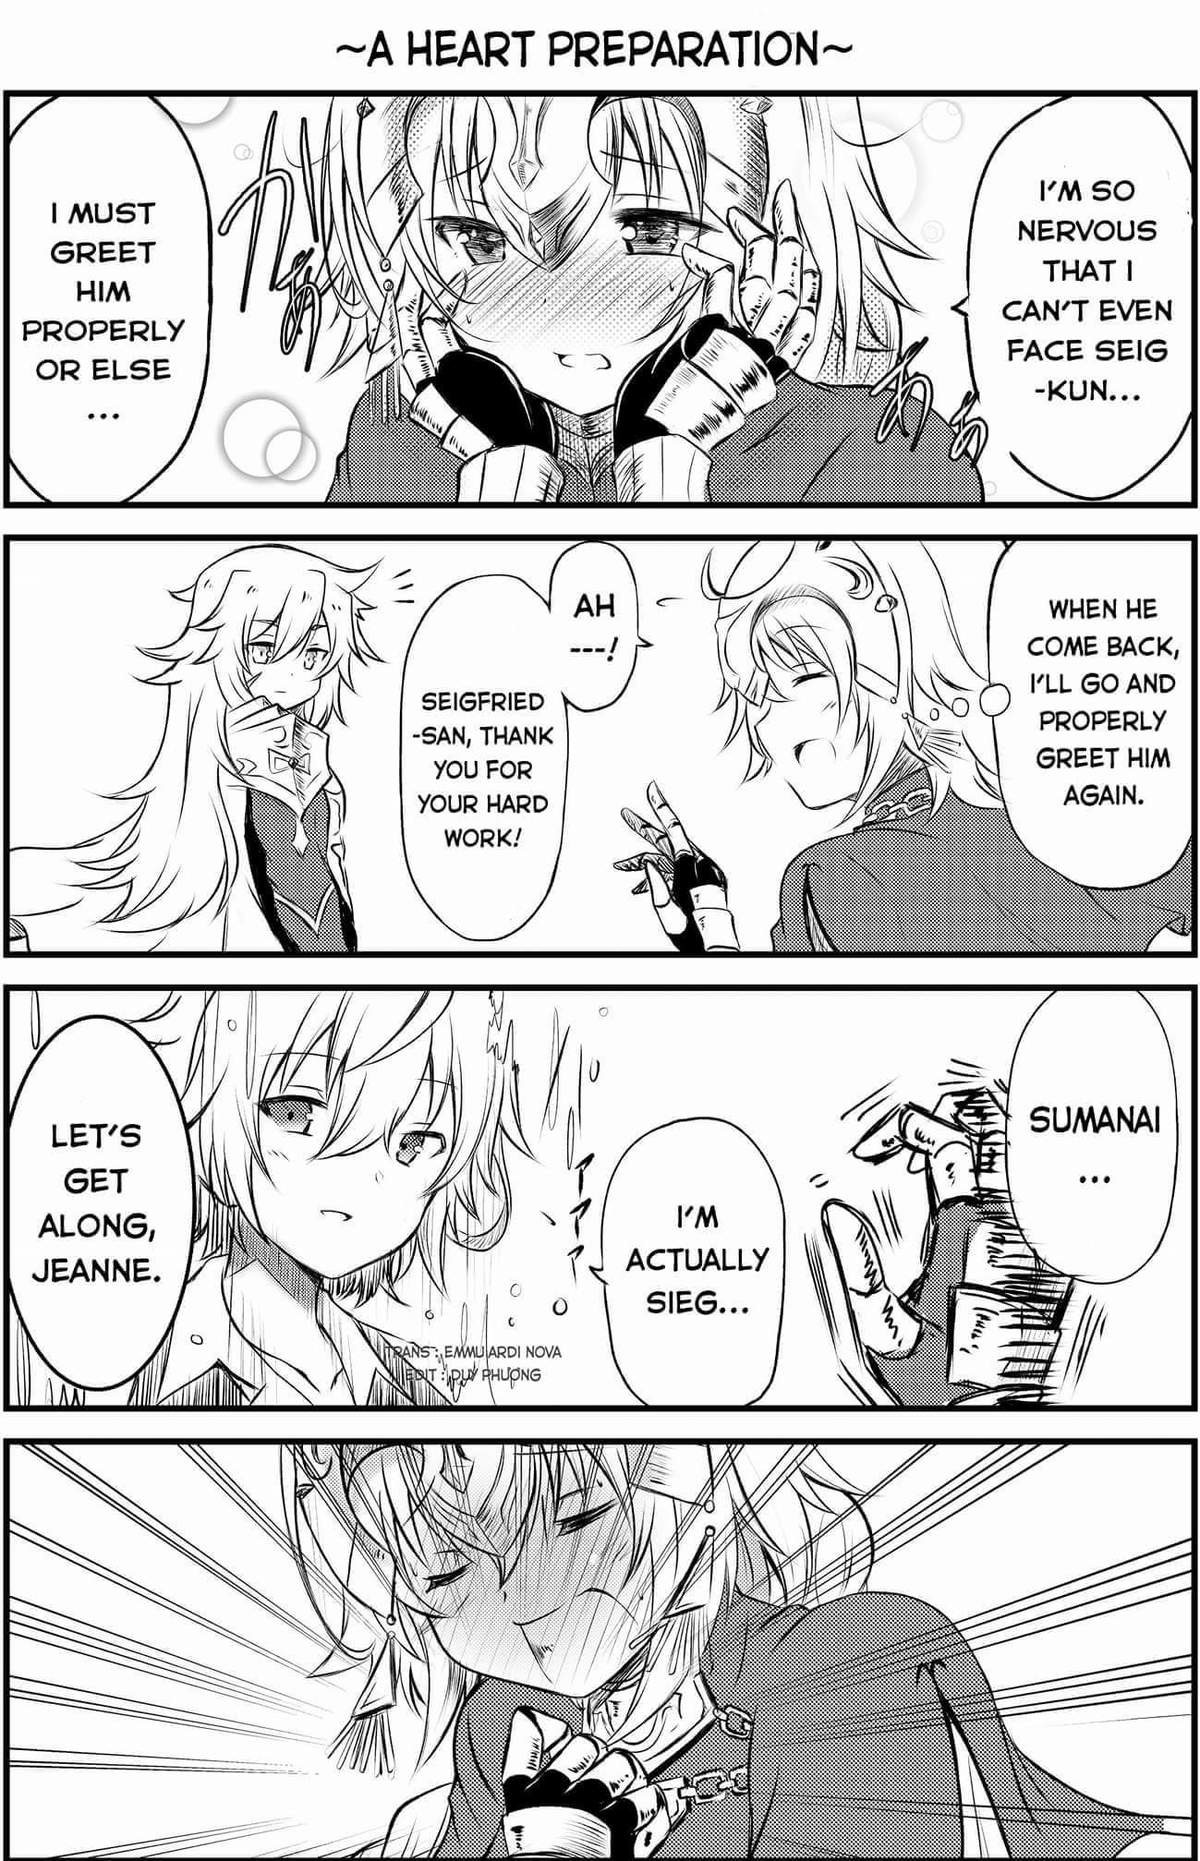 Jeanne Wants That Dragon . join list: Lewds4DHeart (1602 subs)Mention History. PM so NERVOUS ' THAT I CAN' T EVEN FACE sos PROPERLY OR ELSE WHEN HE COME BACK, S